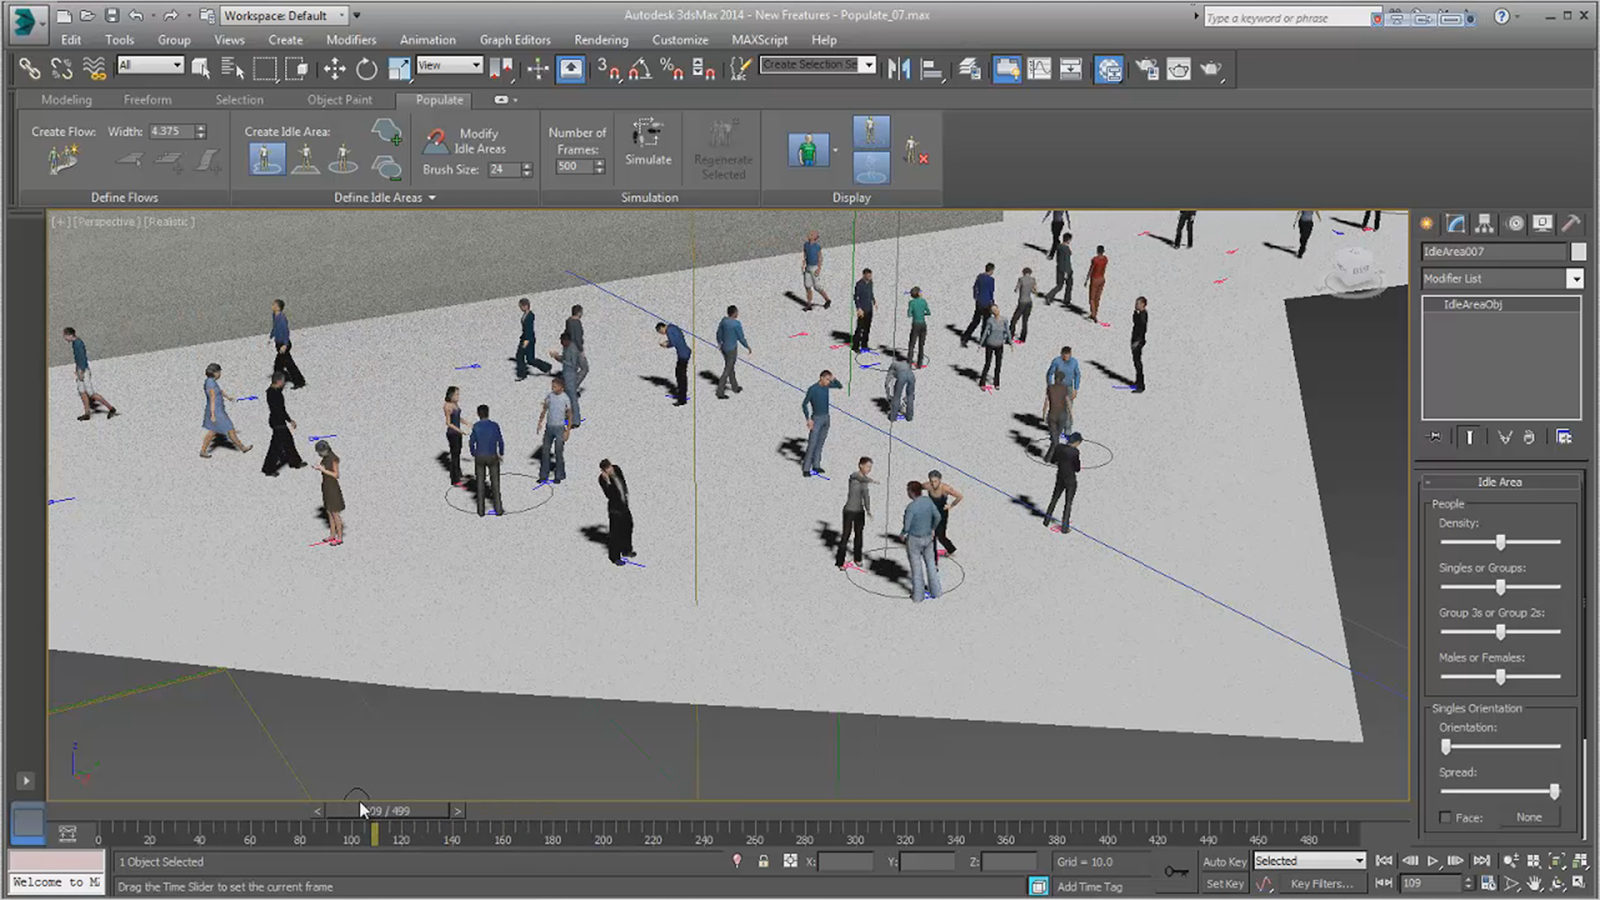 Autodesk 3ds max design 2014 Download